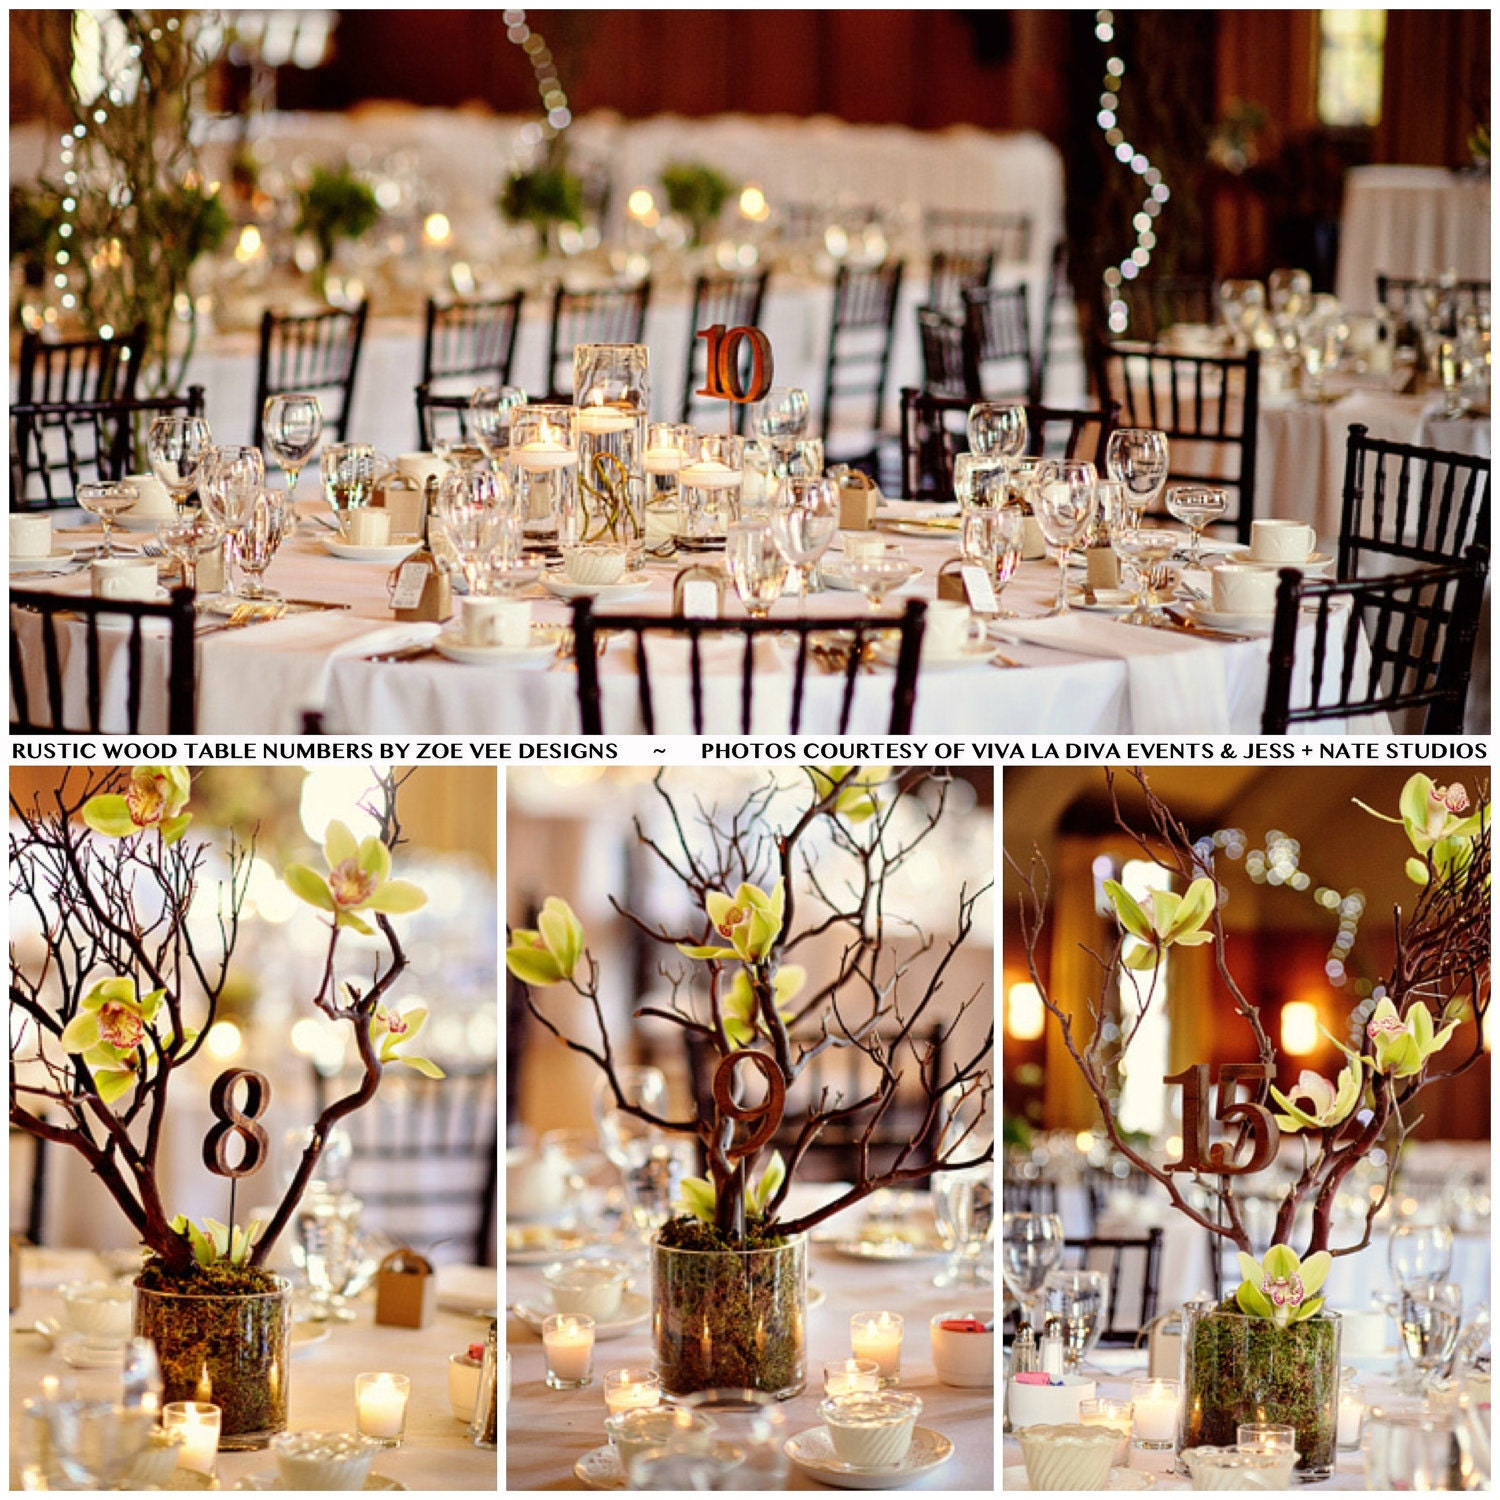 Rustic Wooden Table Numbers For Wedding And Reception Decor